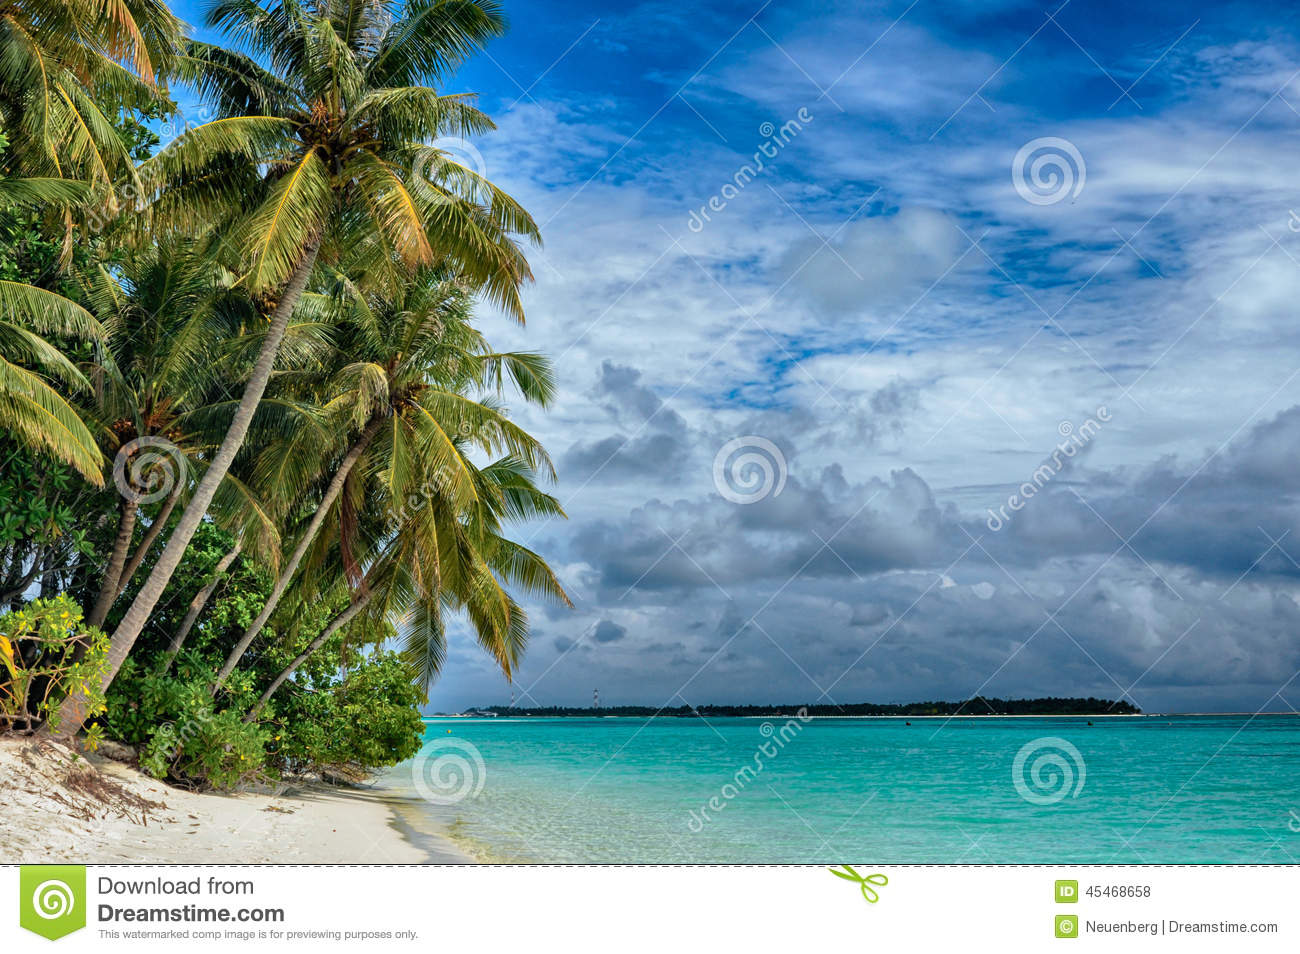 ... In The Ocean, Beach And Рalm Trees Stock Photo - Image: 45468658